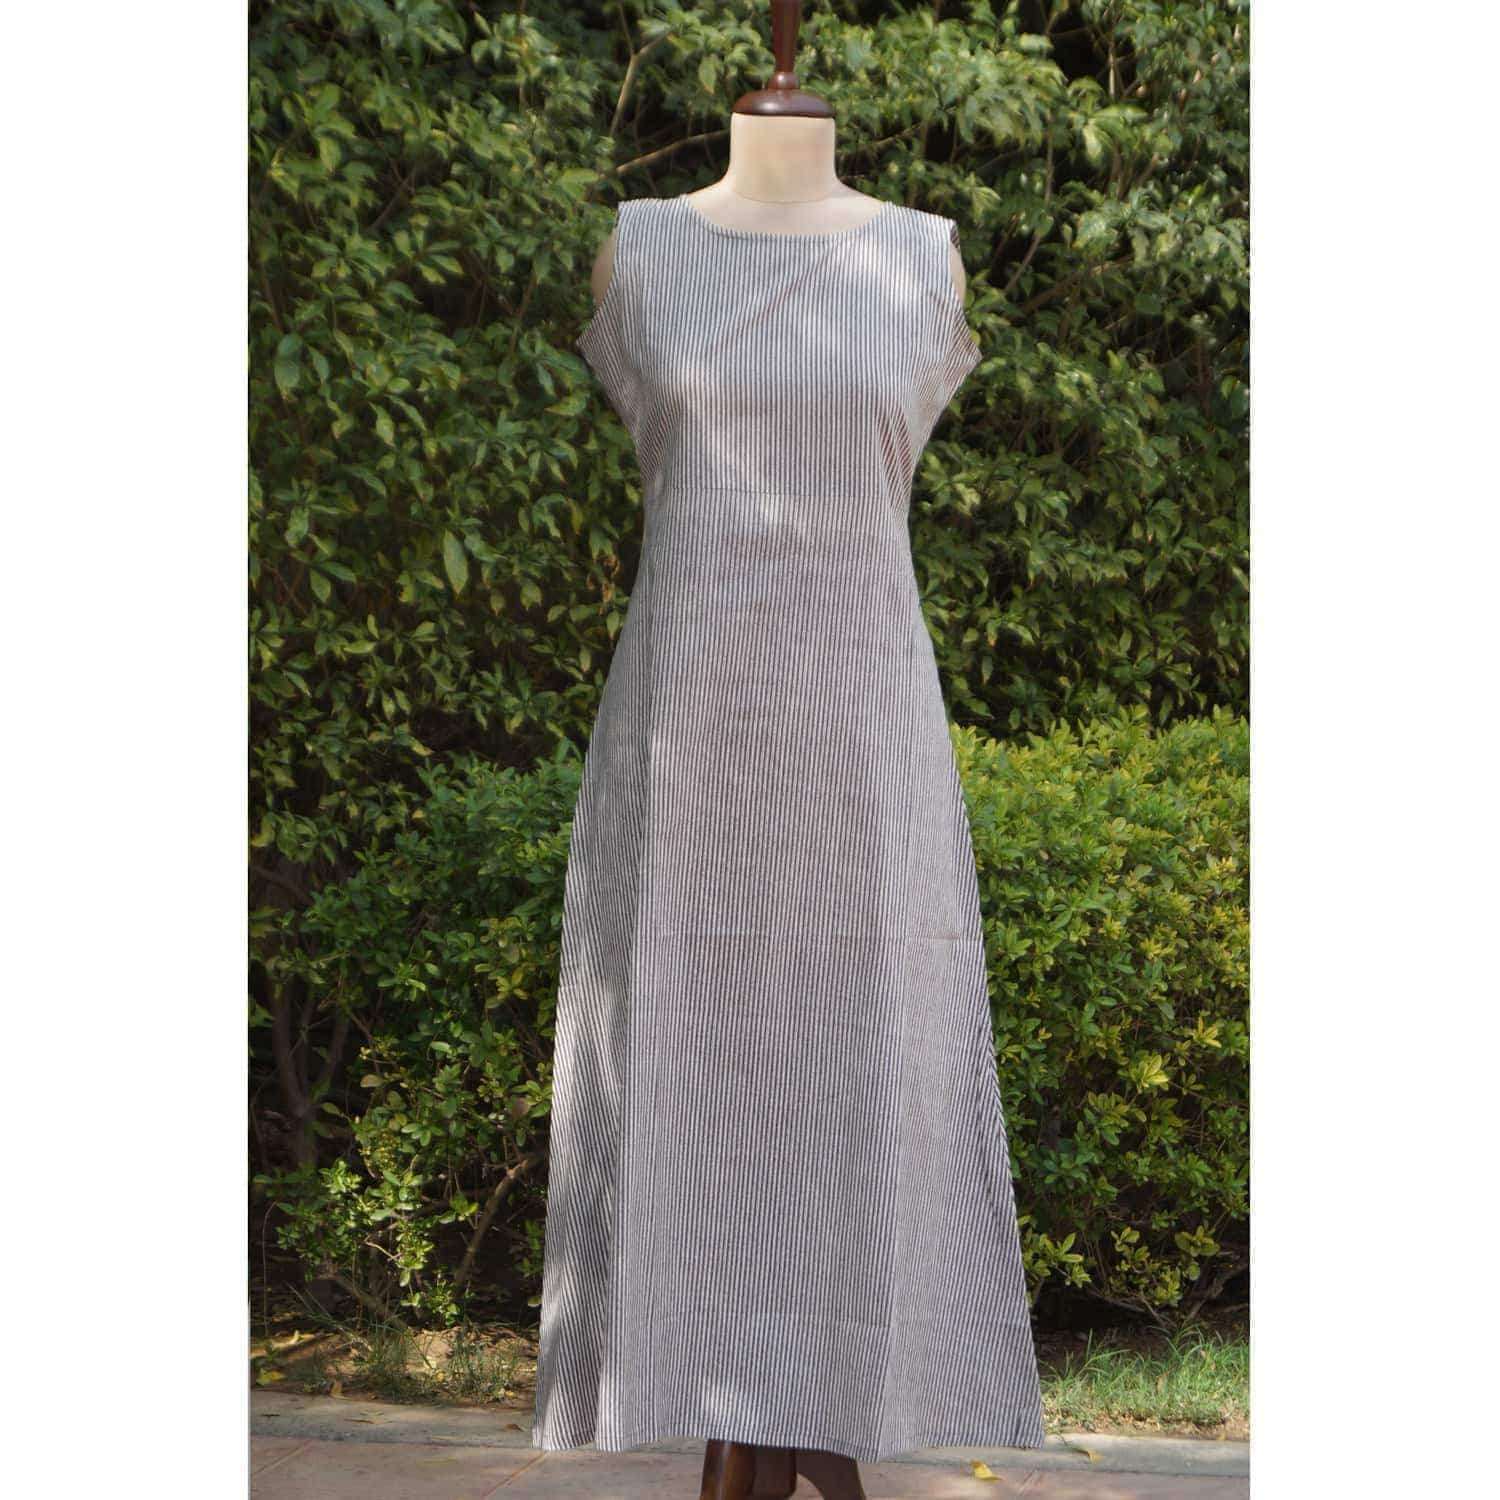 Grey white double layer dress